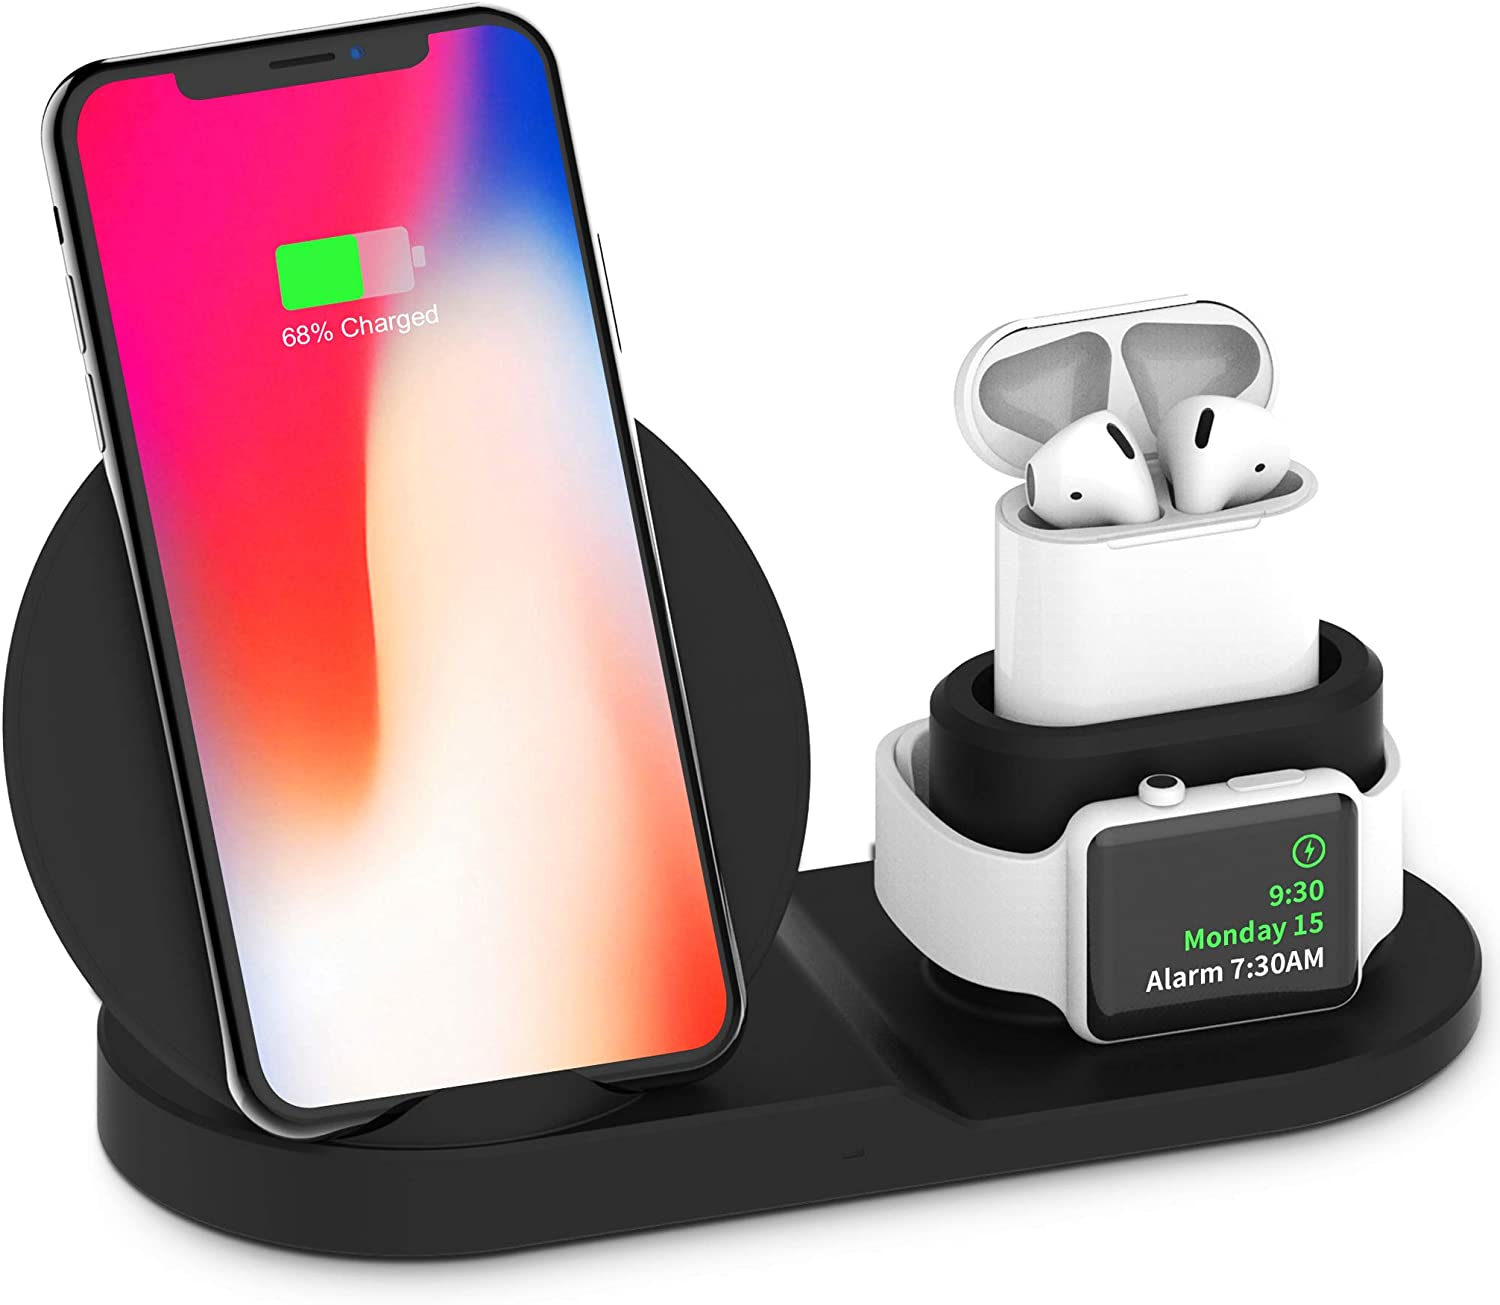 3 in 1 Charging Station for Apple,Wireless Charger, Wireless Charging Stand Apple Watch Charger for Apple Watch and iPhone Airpod Compatible for iPhone X/XS/XR/Xs Max/8 Plus iWatch Airpods-Black.